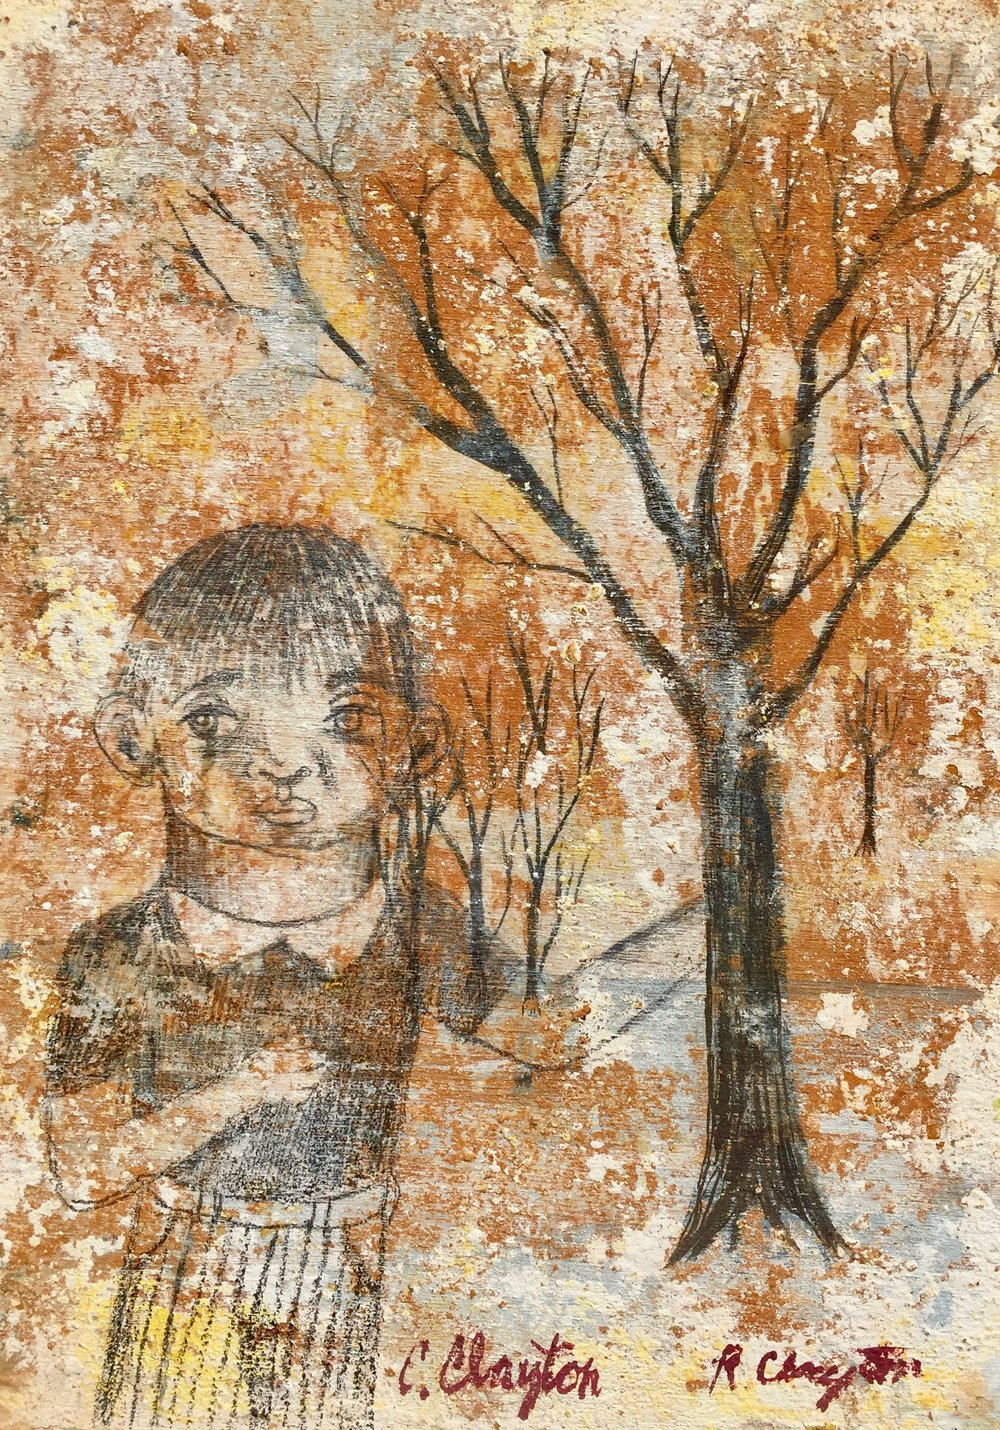 Untitled,   (Boy in forest)   Mixed media on wood panel  2001  5 x 7 In  $1200.00